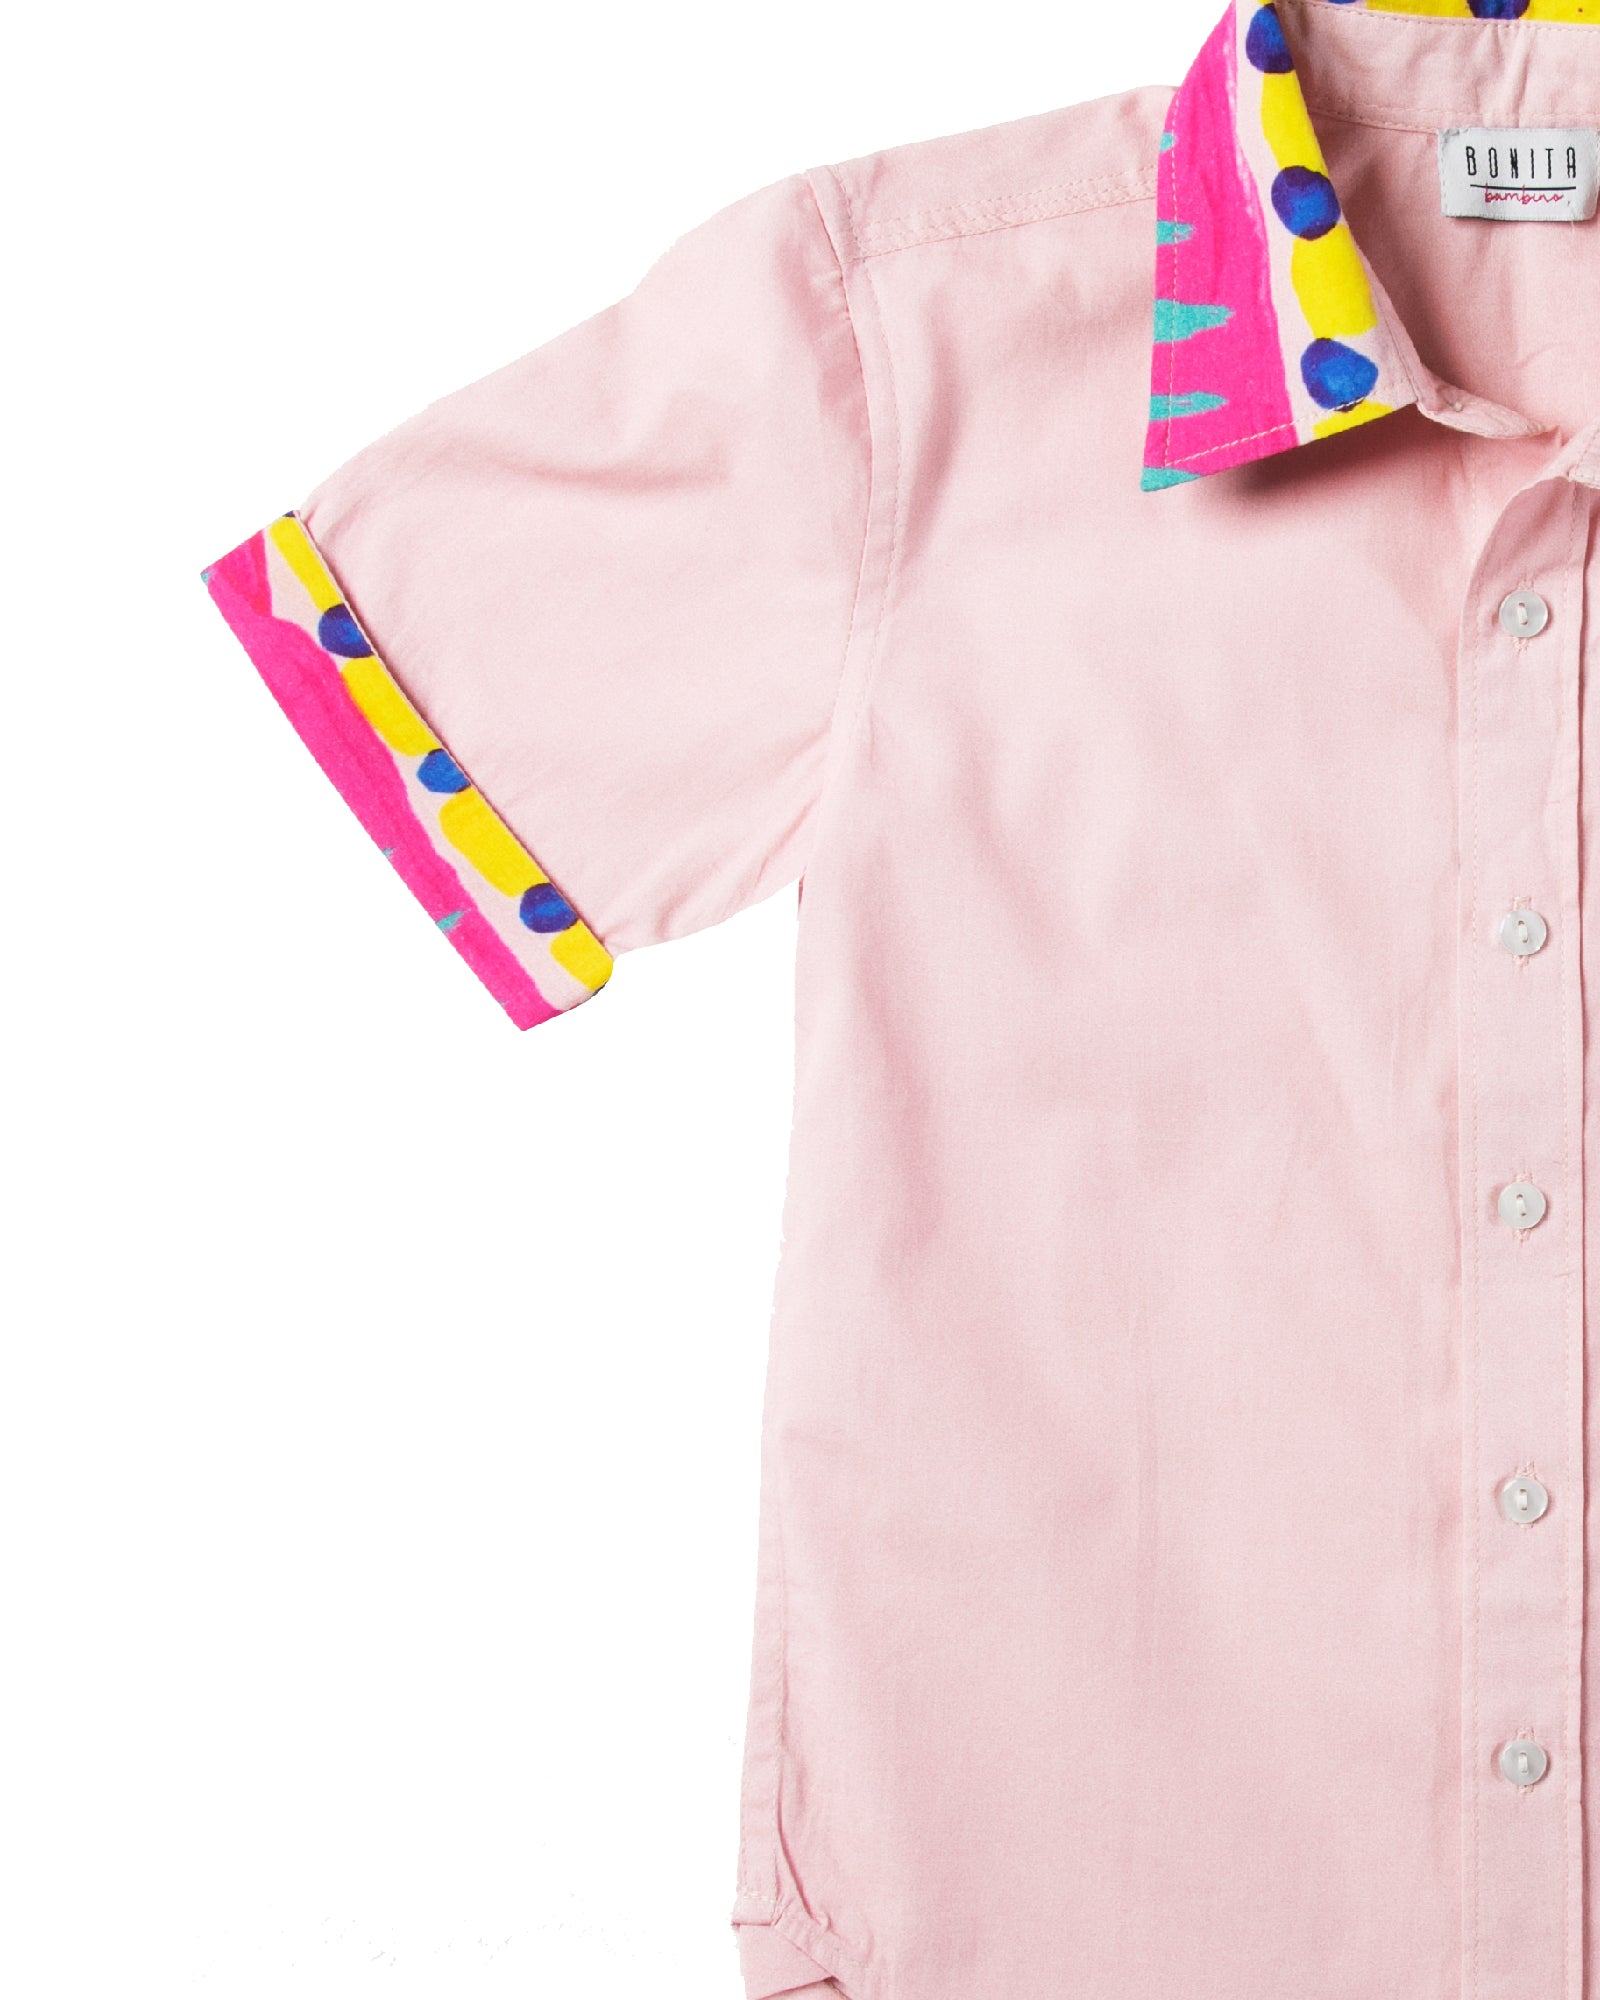 The Boys Electric Pink Party Shirt by Bonita Bambino - DETAIL